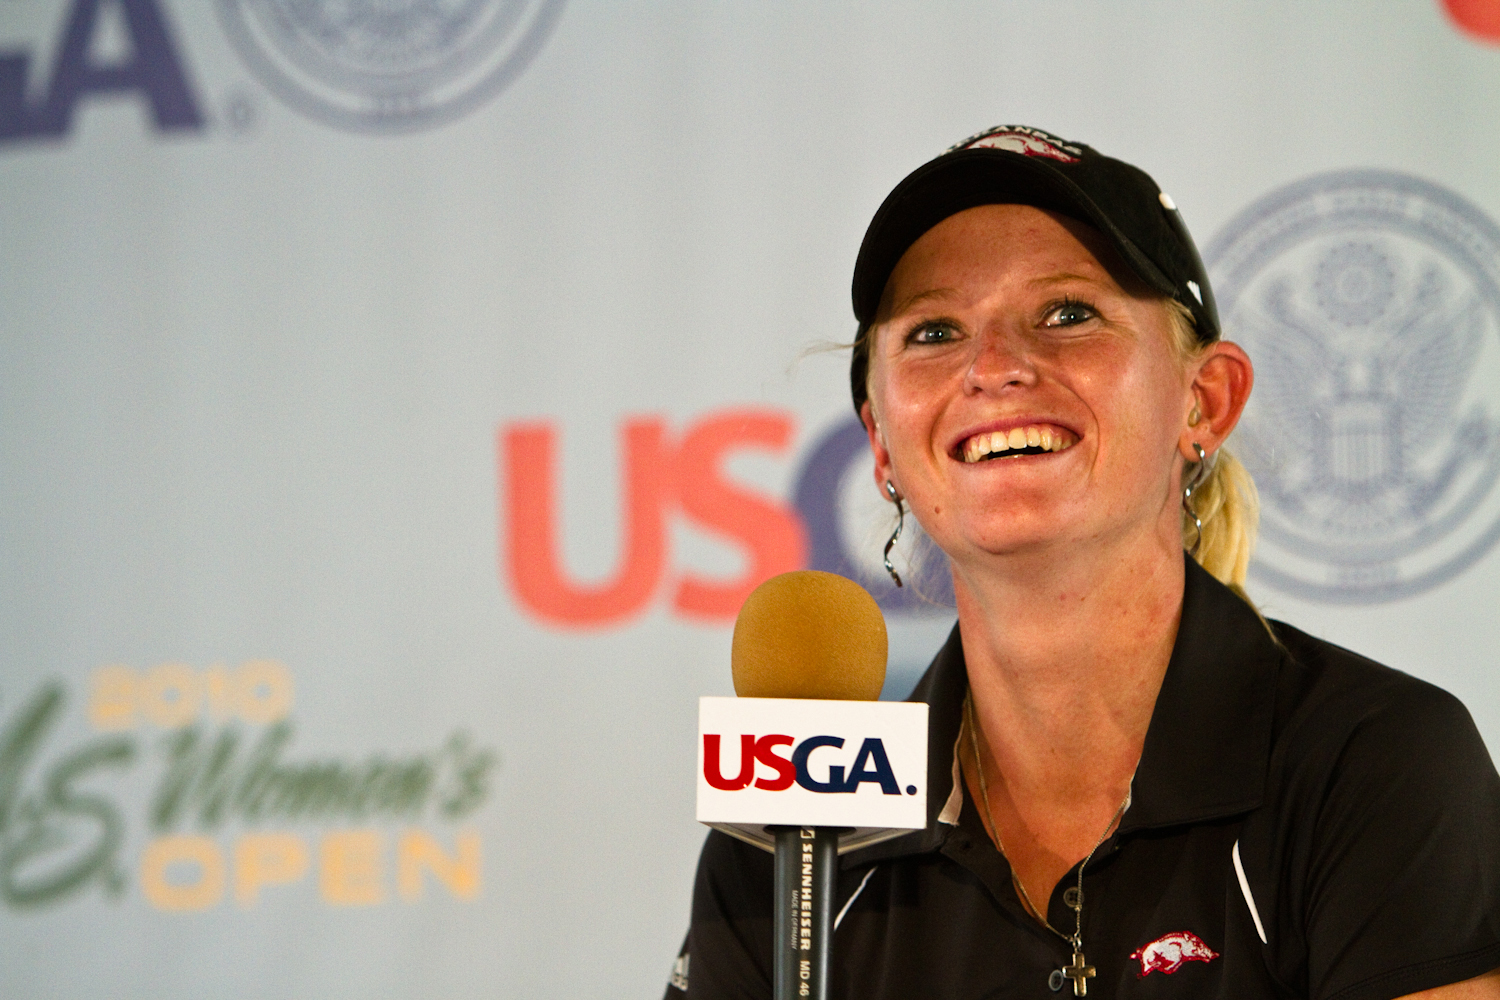 Amateur Kelli Shean answers questions following Round 1 at the U.S. Women's Open.